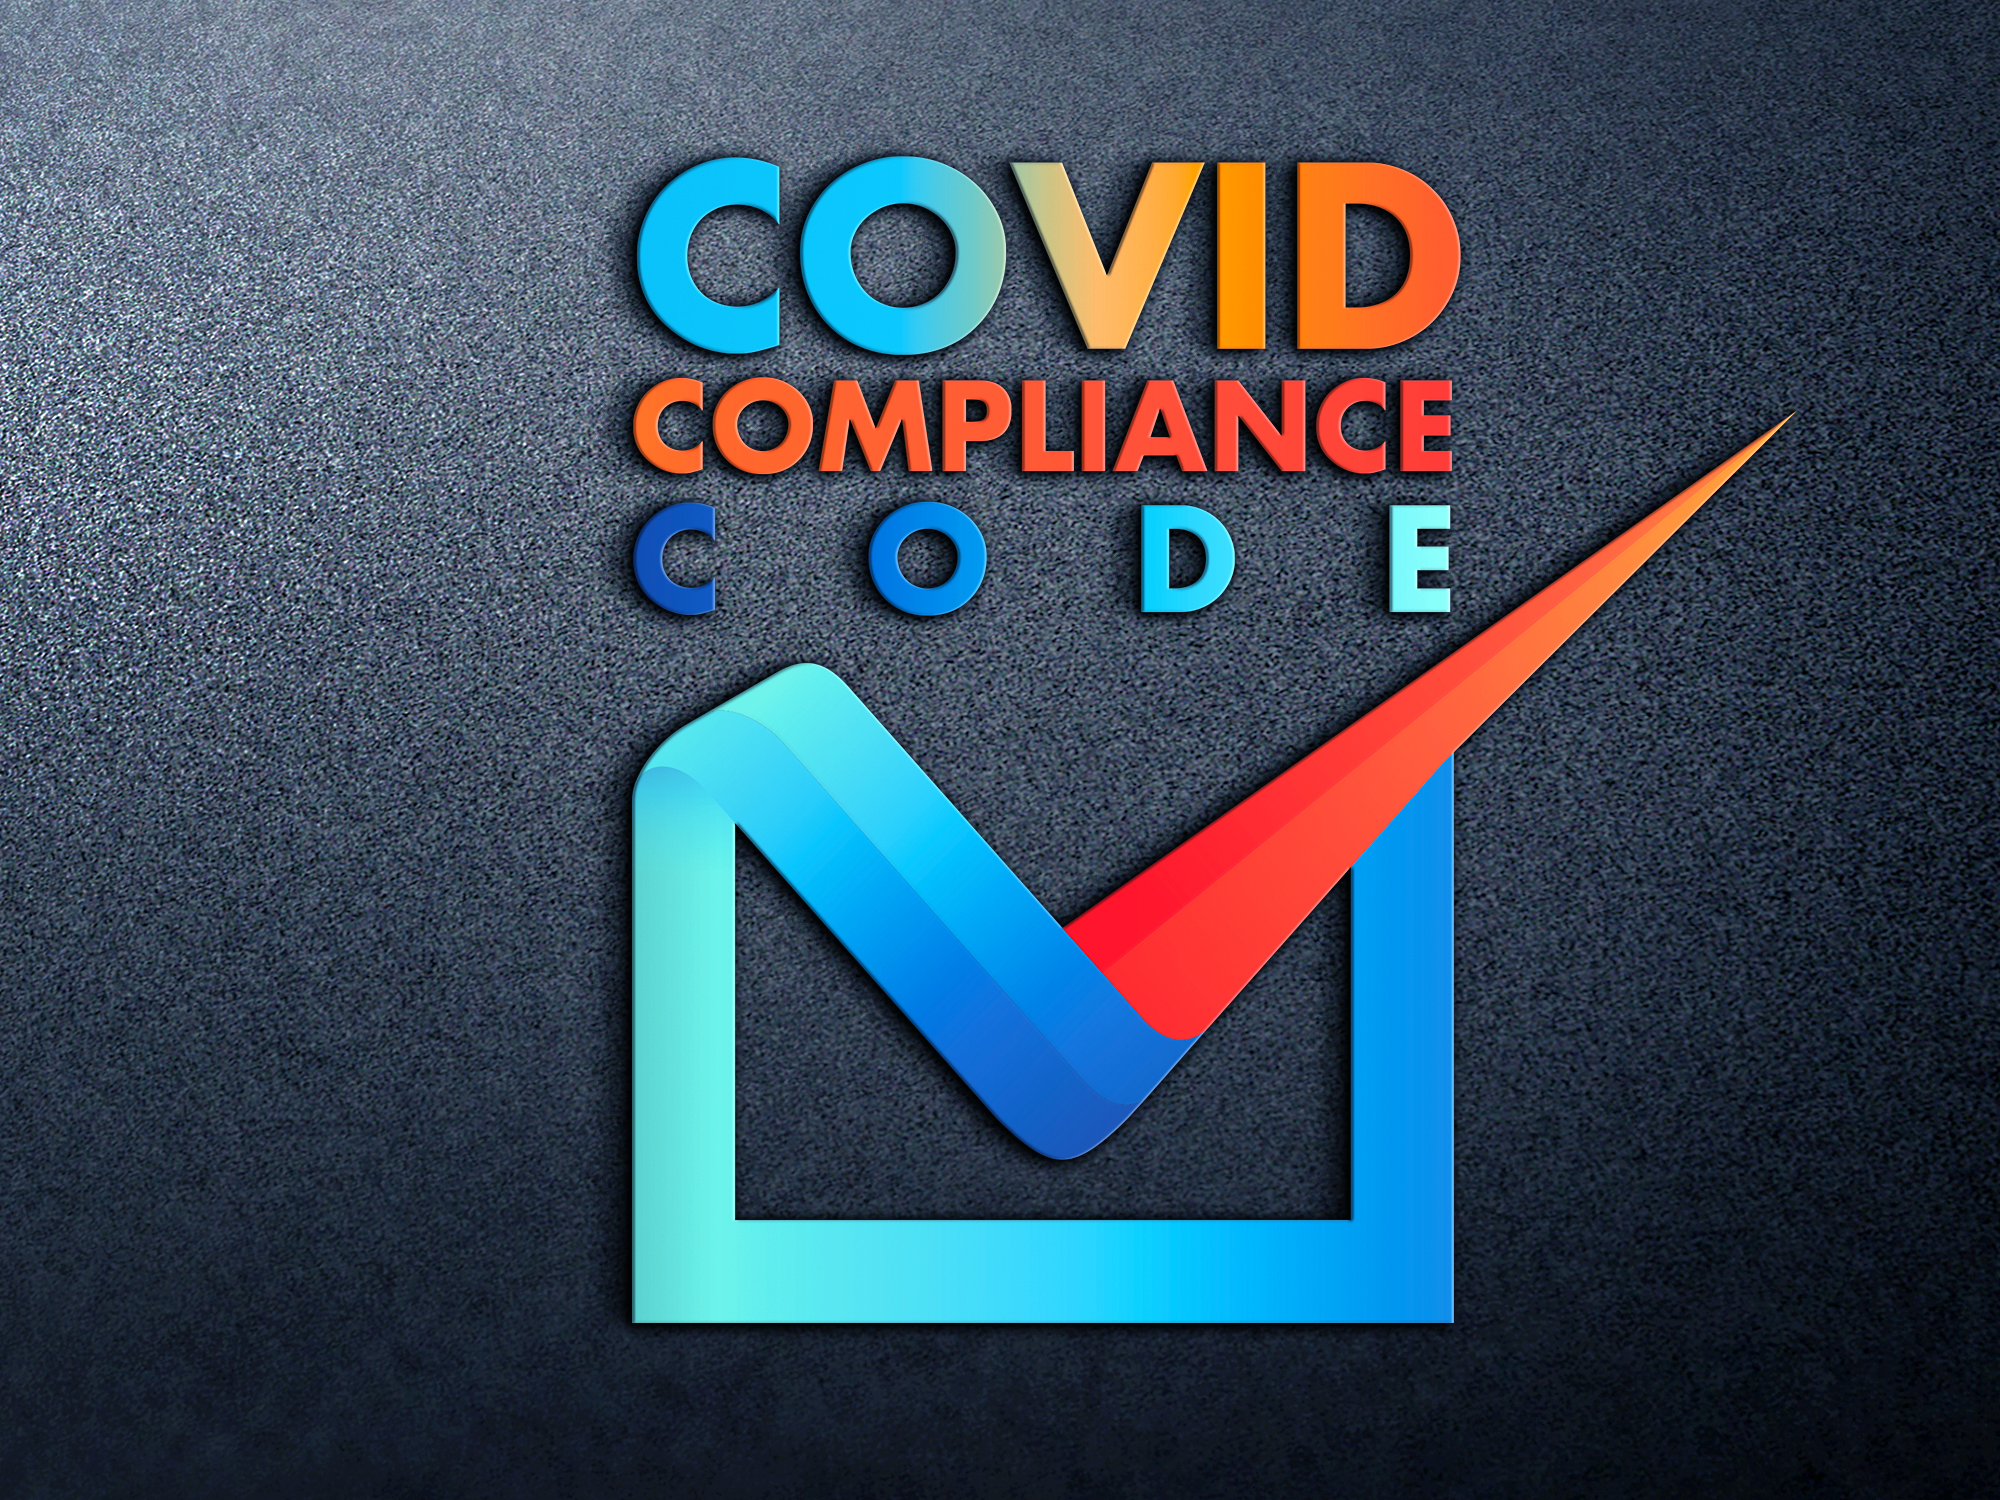 Black Background Covid Compliance Code